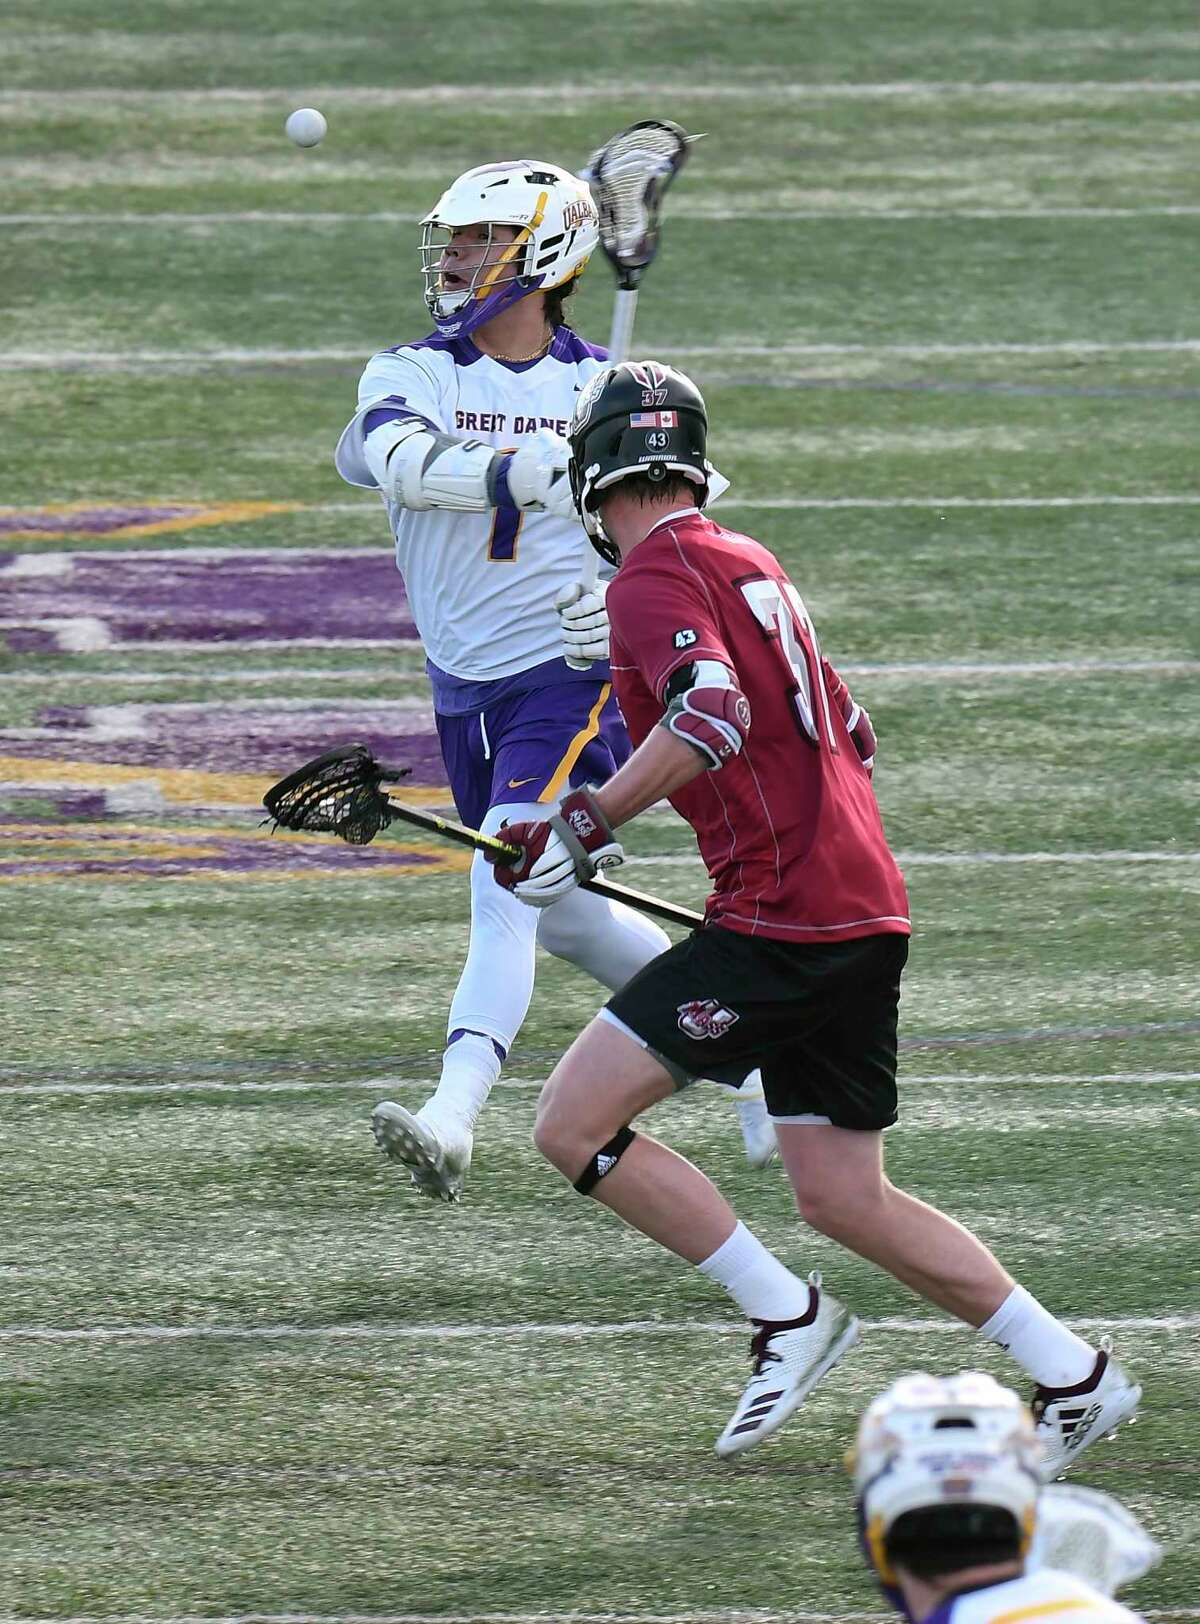 University at Albany's Tehoka Nanticoke (1) moves the ball agianst University of Massachusetts's Jackson Cummings (77) during a home opener NCAA lacrosse game Tuesday March 5, 2019, in Albany, N.Y.